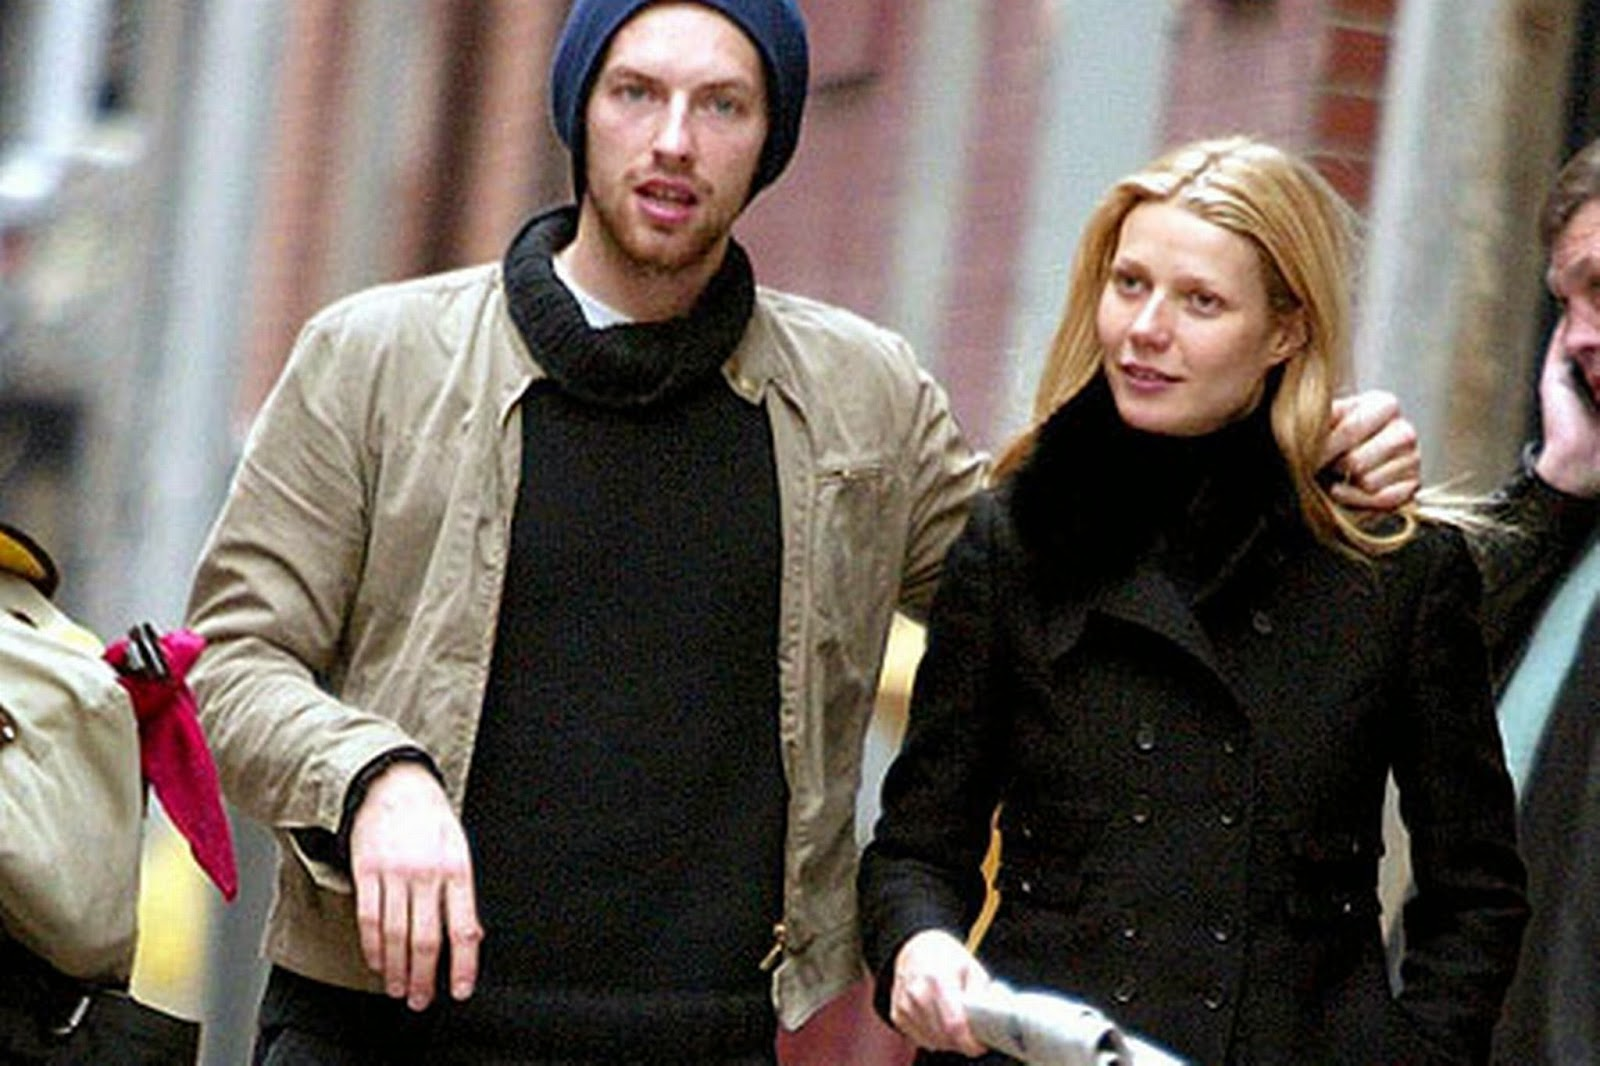 Chris Martin and Gwyneth Paltrow to seperate